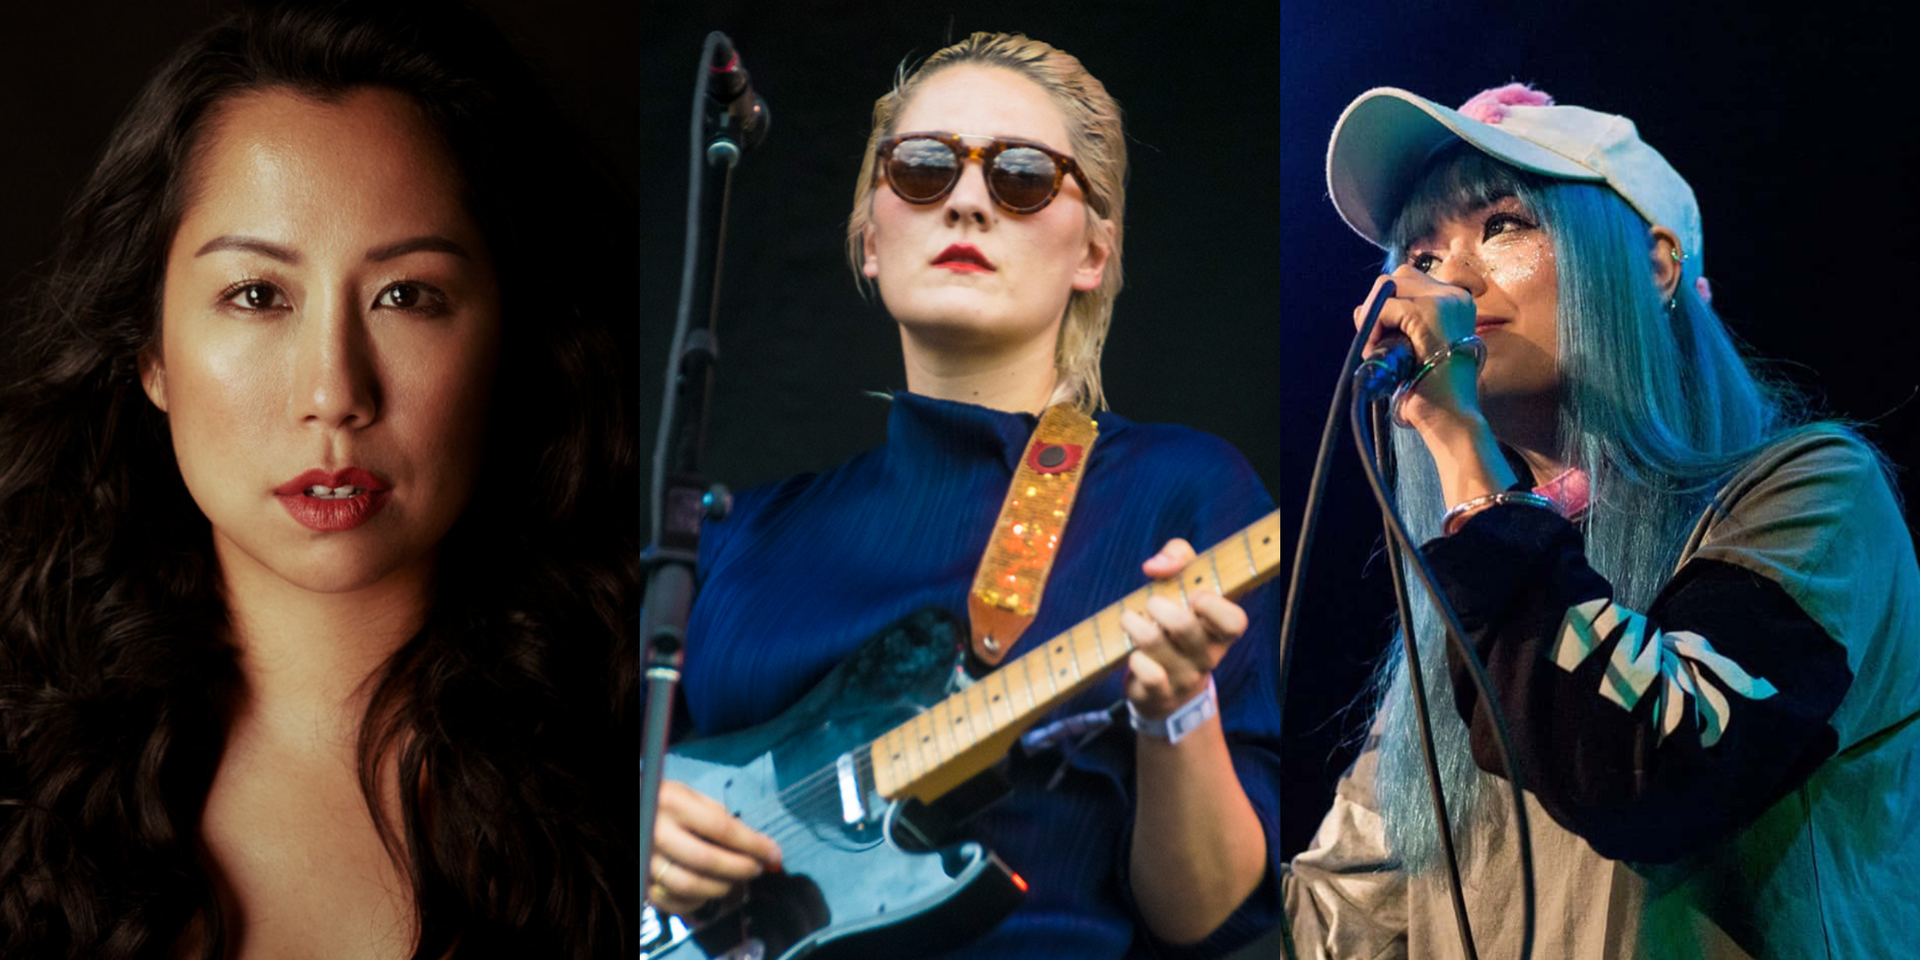 Female-fronted Alex Blake Charlie Sessions to debut in Singapore this December – Cate Le Bon, Kero Kero Bonito, Goat Girl, Vandetta and more to perform